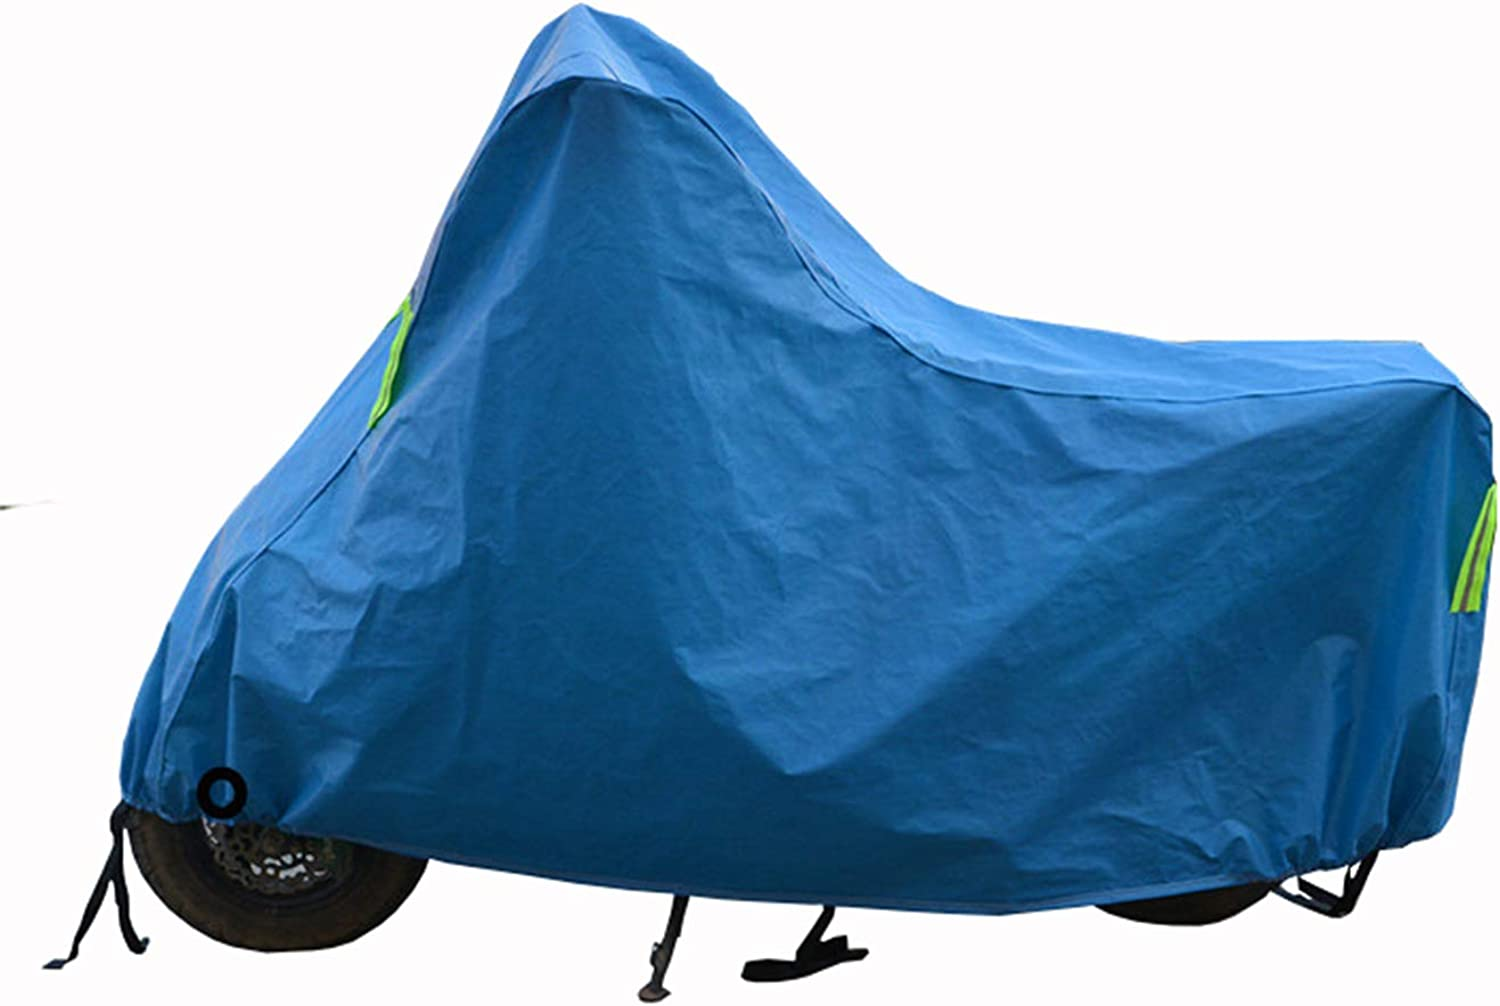 Motorcycle Cover, Bicycle Cover, Waterproof, Dustproof, Snowproof, UV Resistant, Outdoor Predective Cover, with Reflective Strips, Various Sizes, (S M   L XL) bluee color.